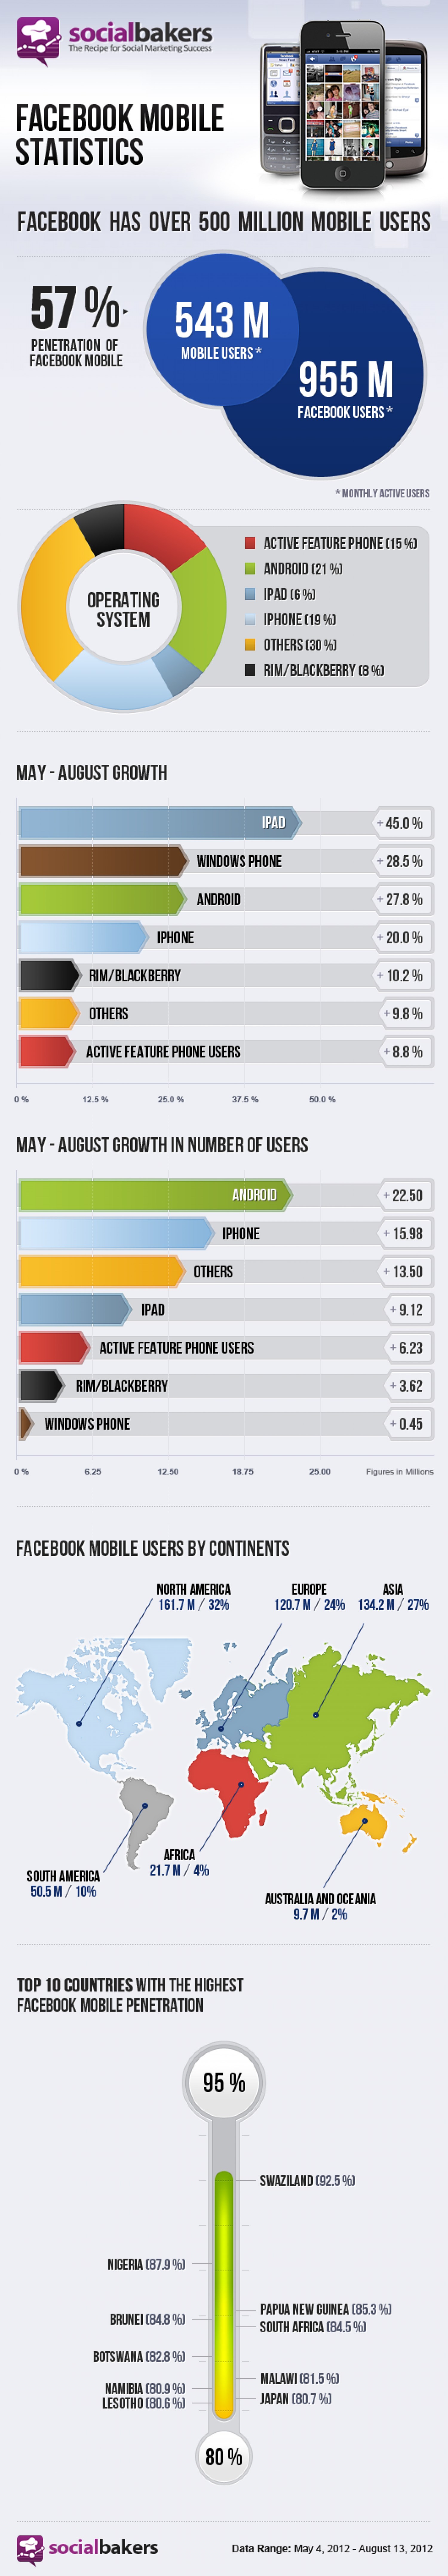 Facebook Mobile Statistics Infographic